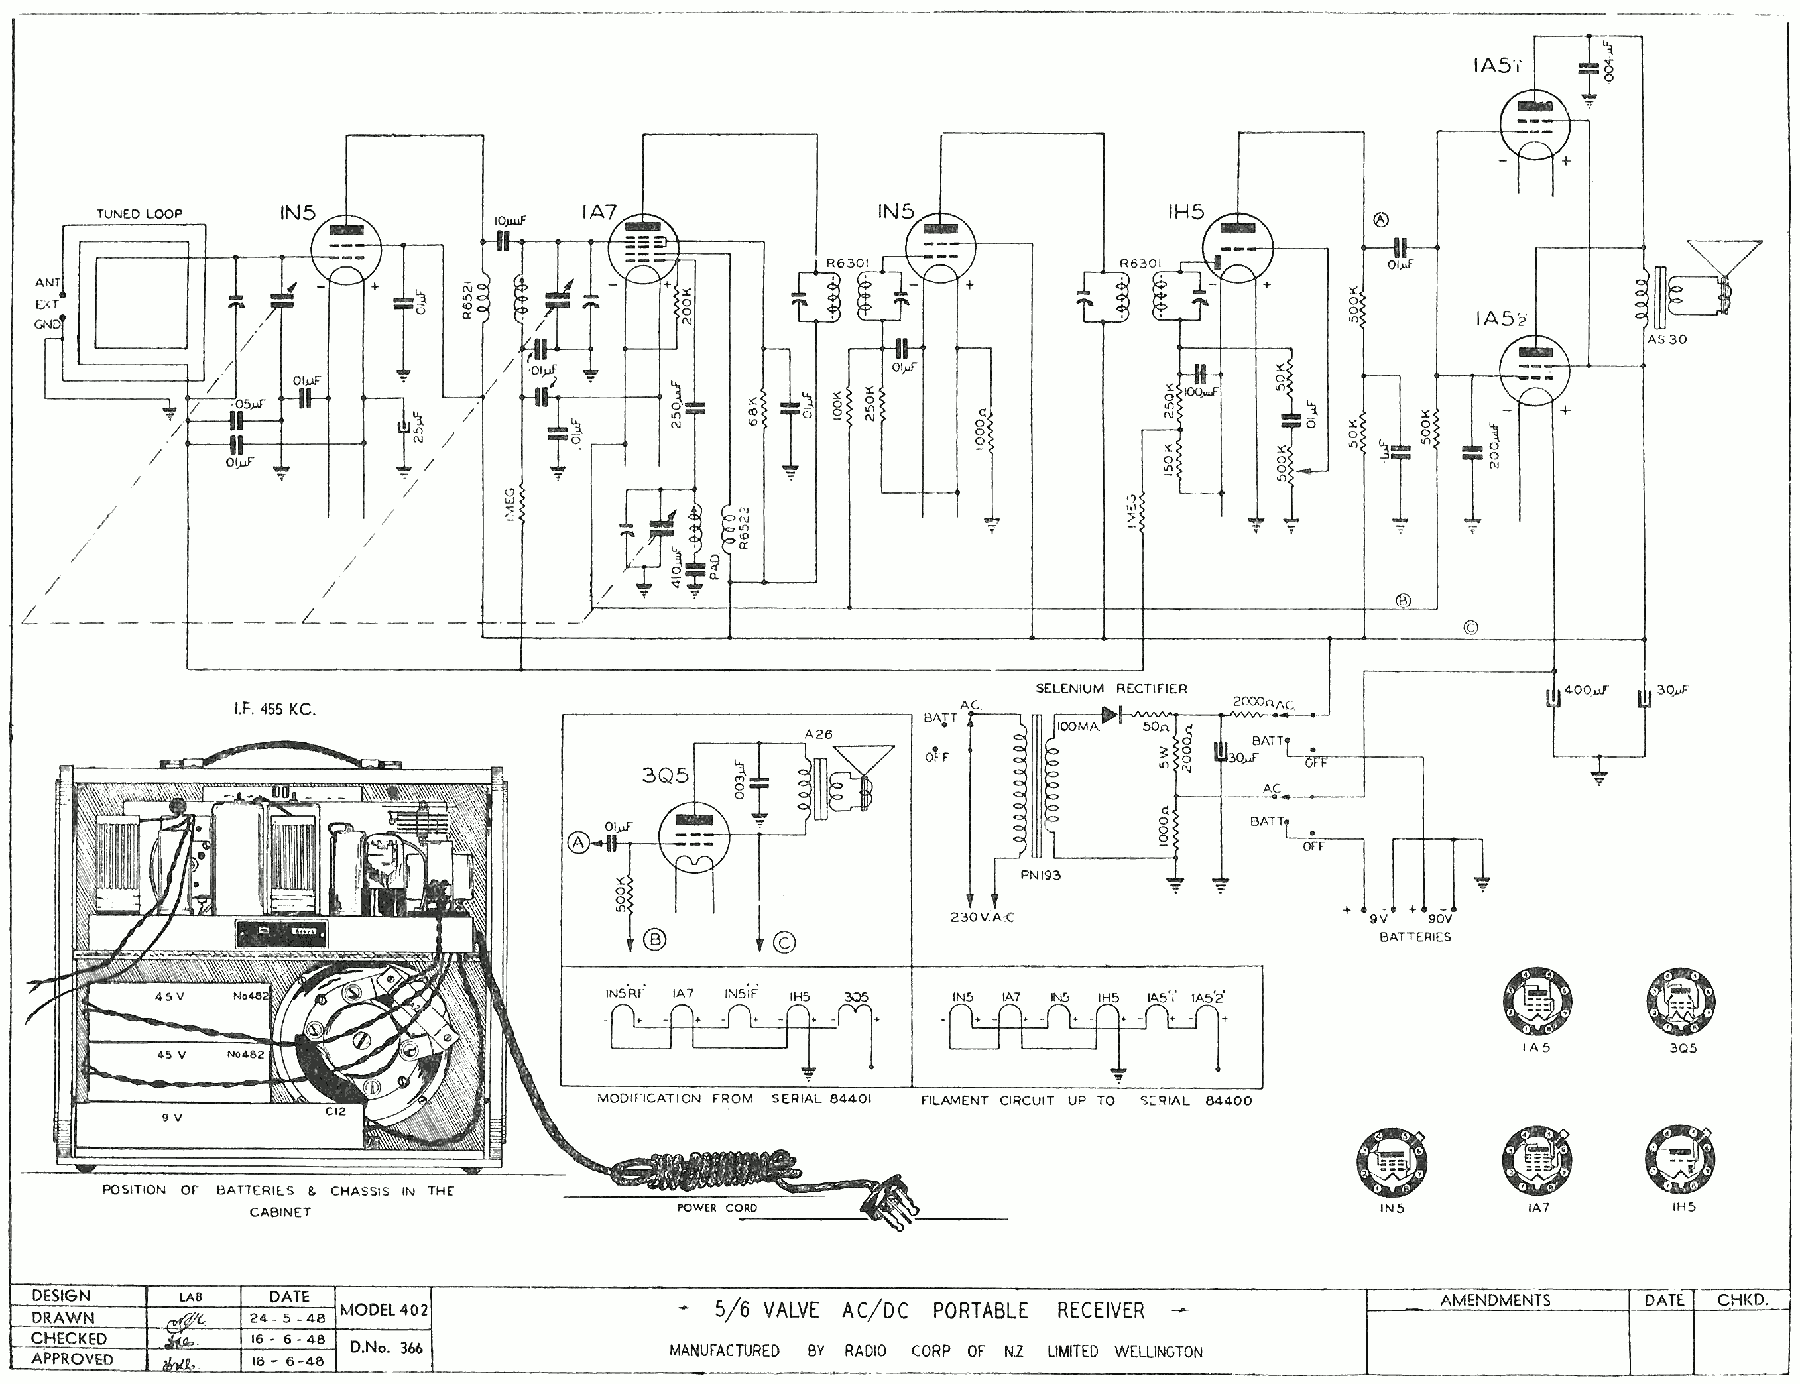 1948 Columbus model 402 Schematic